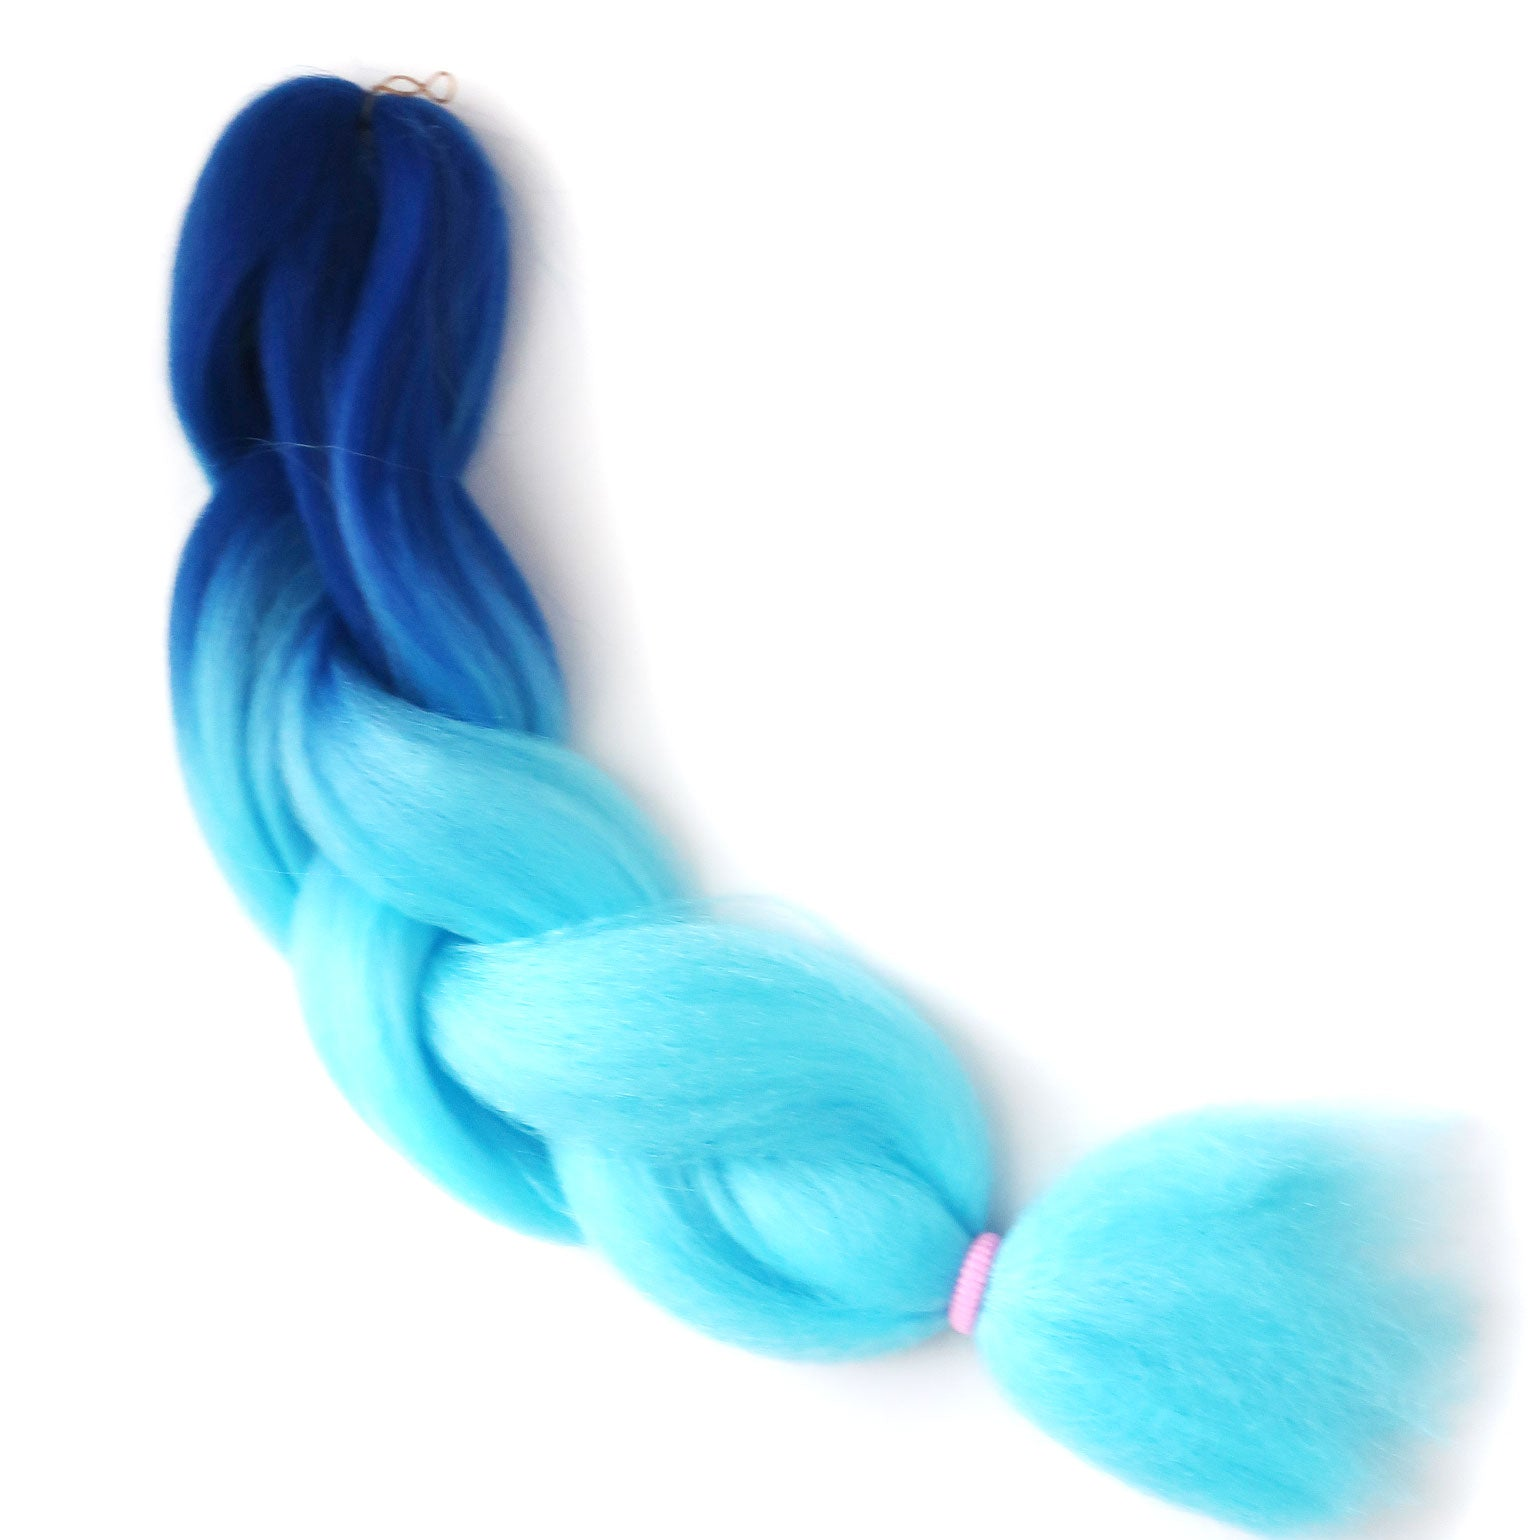 Neptune jumbo braid multi-purpose braiding hair in bright blue to light blue.